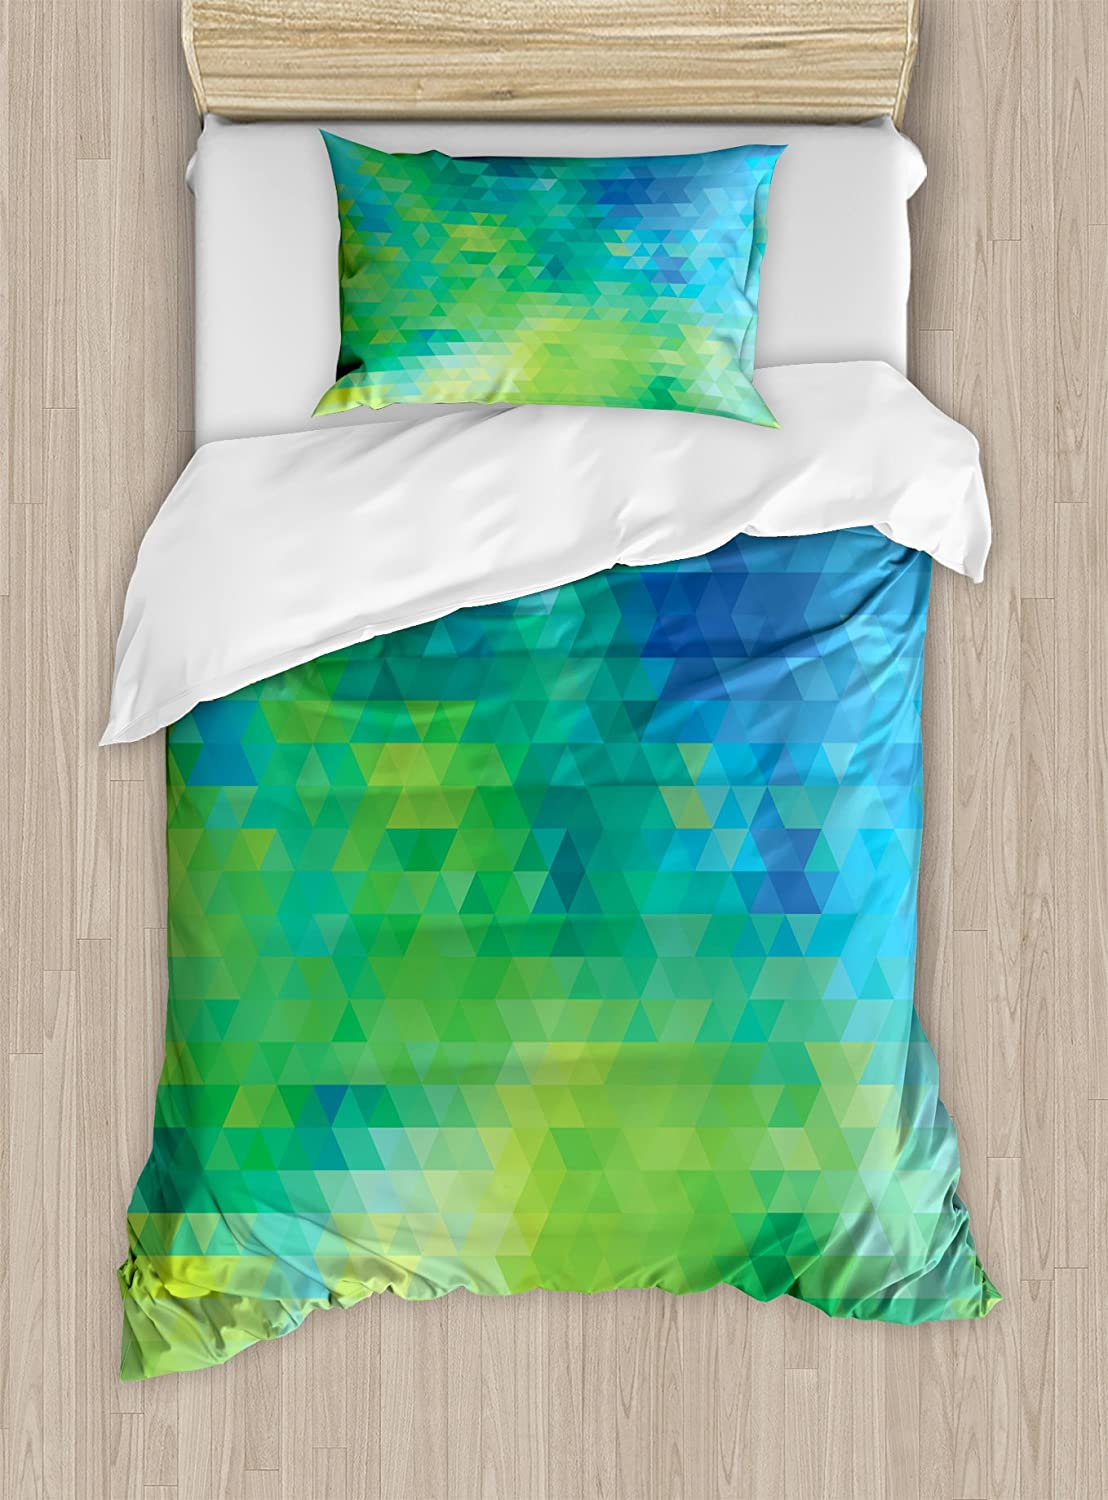 Super Special SALE held Ambesonne Green and Blue Duvet quality assurance Cover Abstract Pat Geometric Set